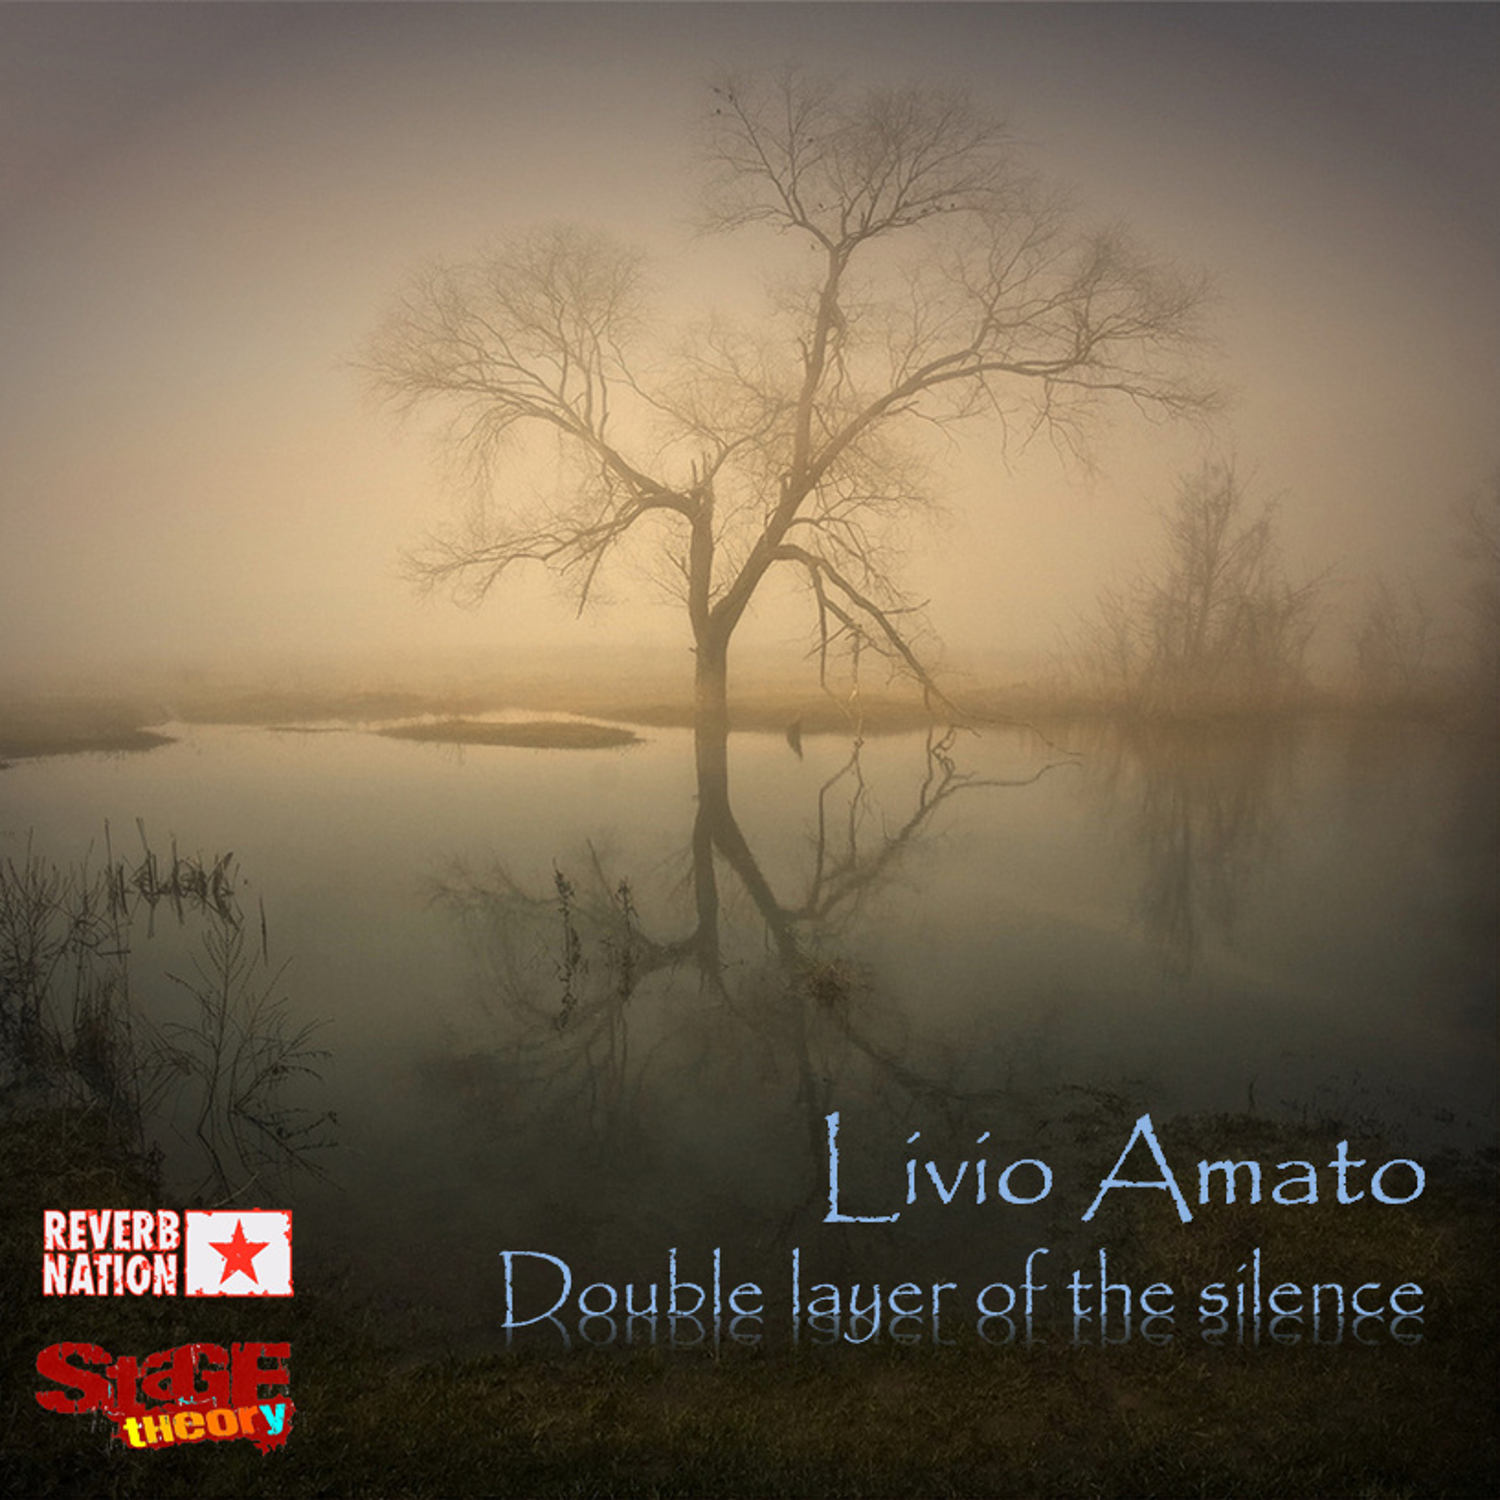 Livio Amato Double layer of the silence